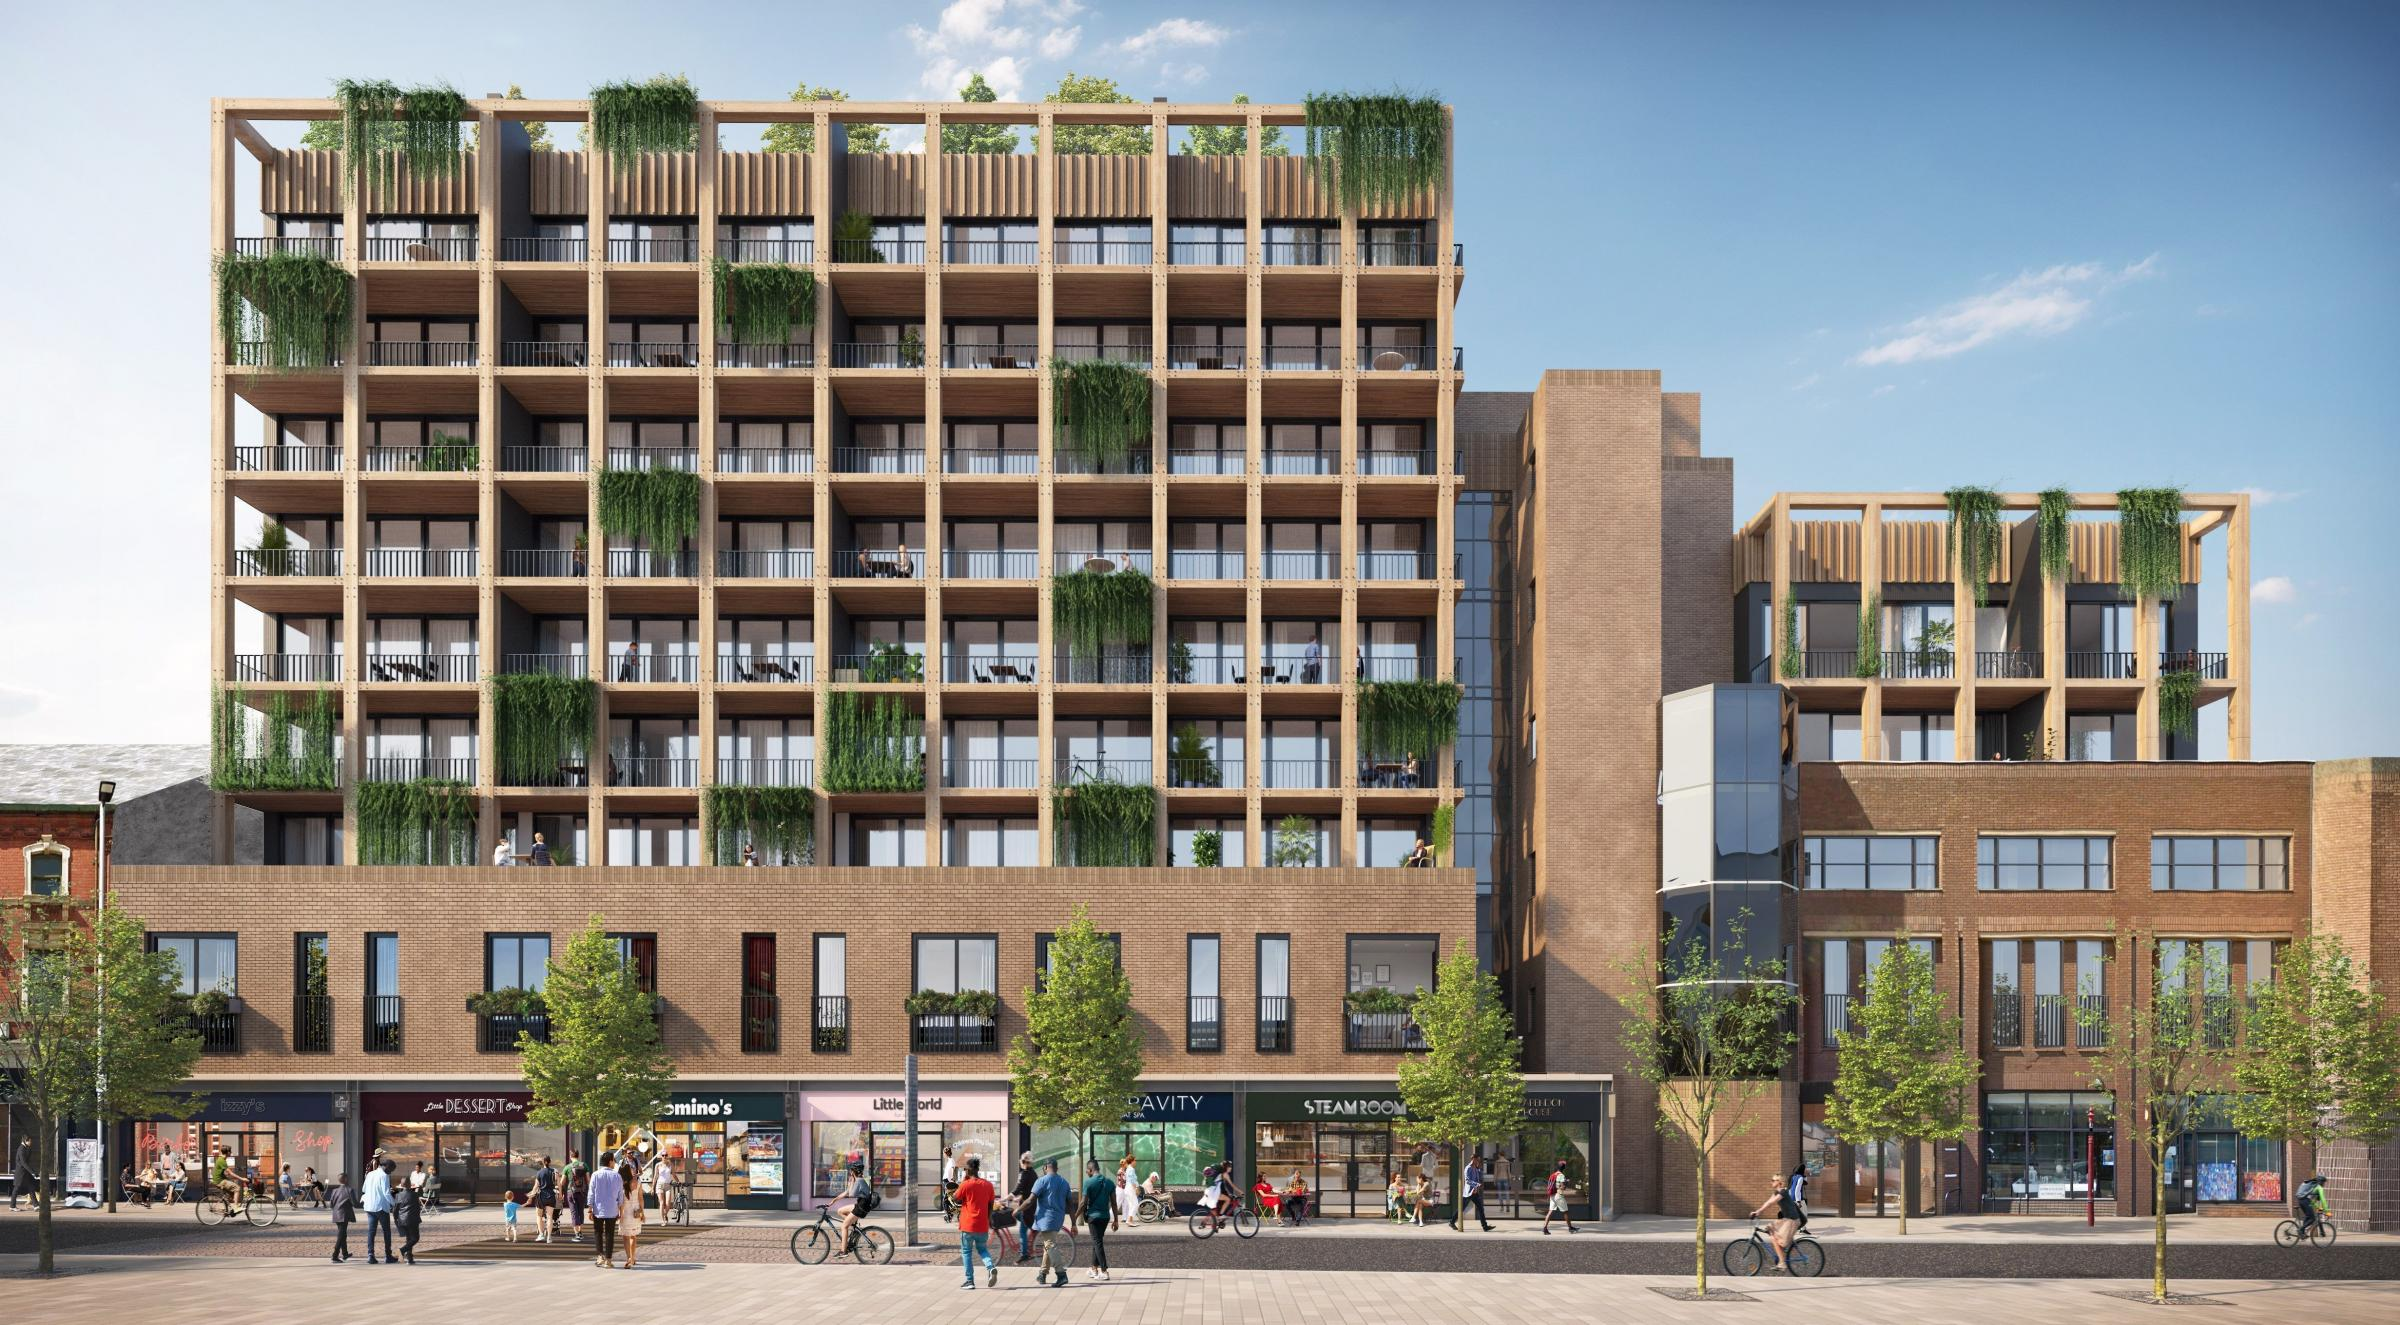 Stamford Quarter public square and new homes plans go out to consultation [Image by Bruntwood Works]